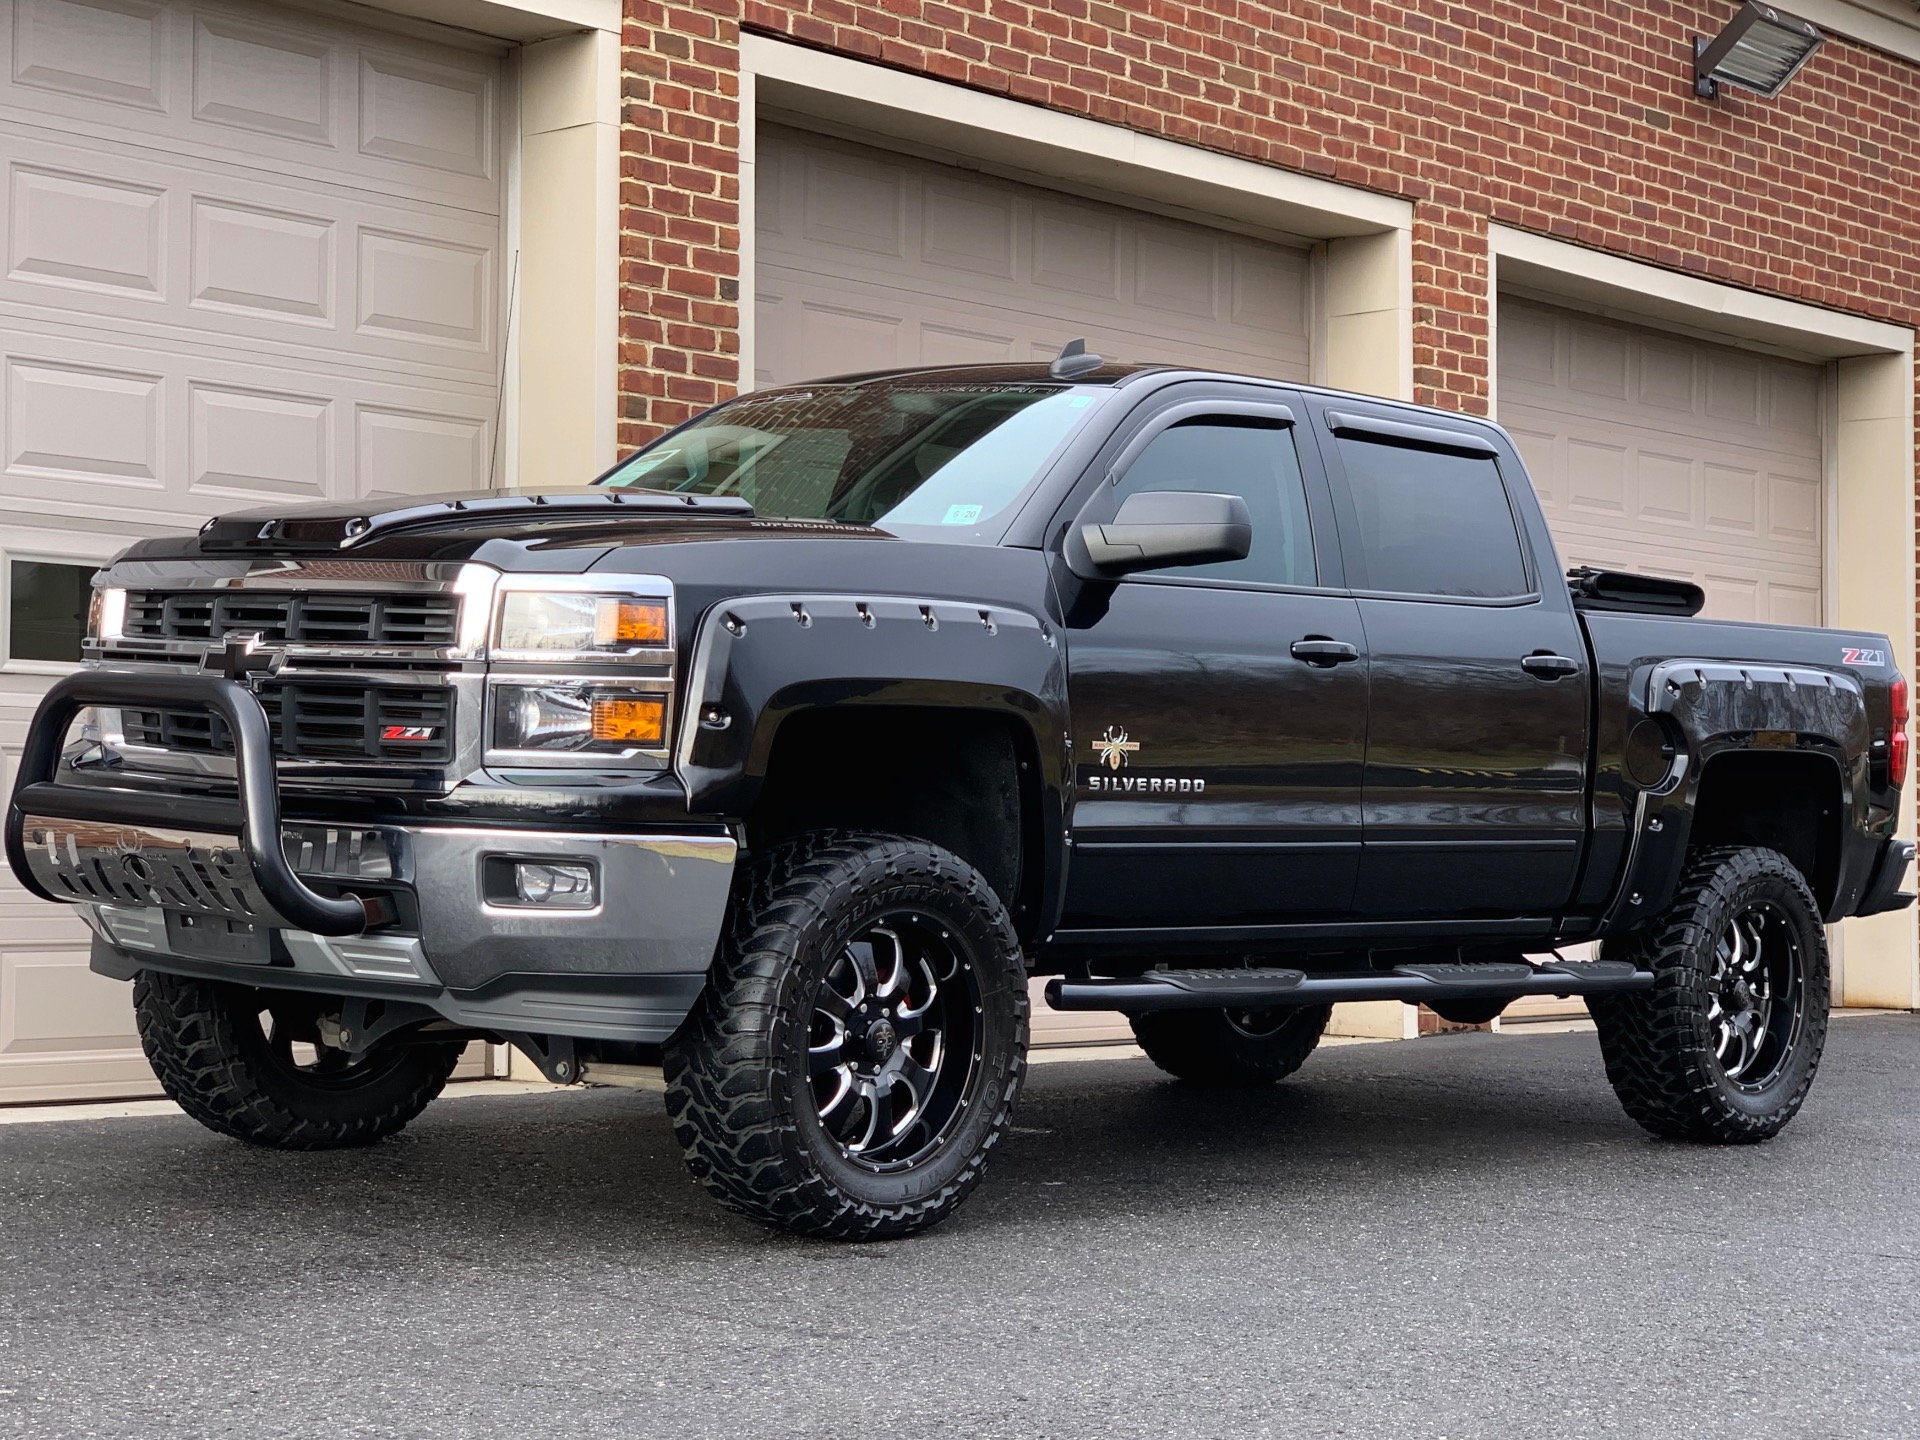 Used-2015-Chevrolet-Silverado-1500-Southern-Comfort-Black-Widow-Edition-Z71